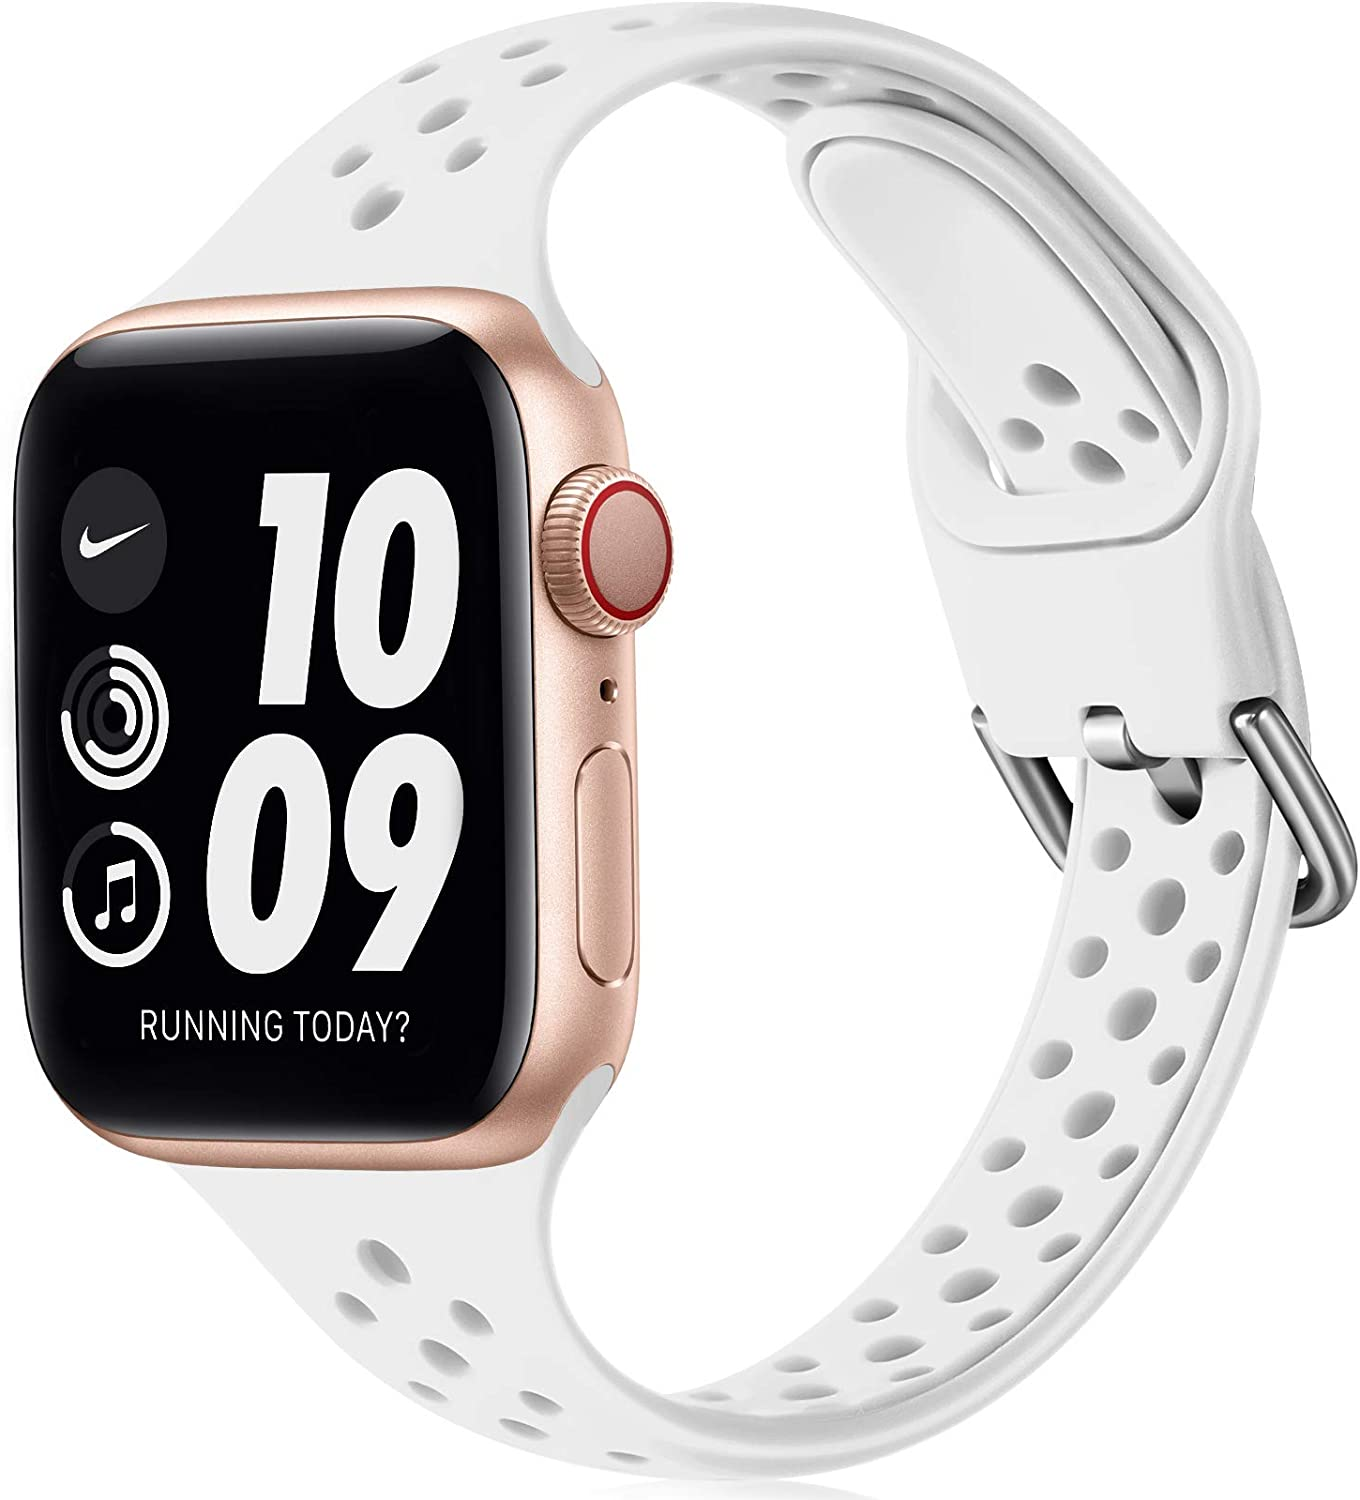 Henva Slim Sport Band Compatible with Apple Watch SE 38mm 40mm for Women Girls, Soft Silicone Narrow Breathable Band Compatible with iWatch Series 6 5 4 3 2 1, White